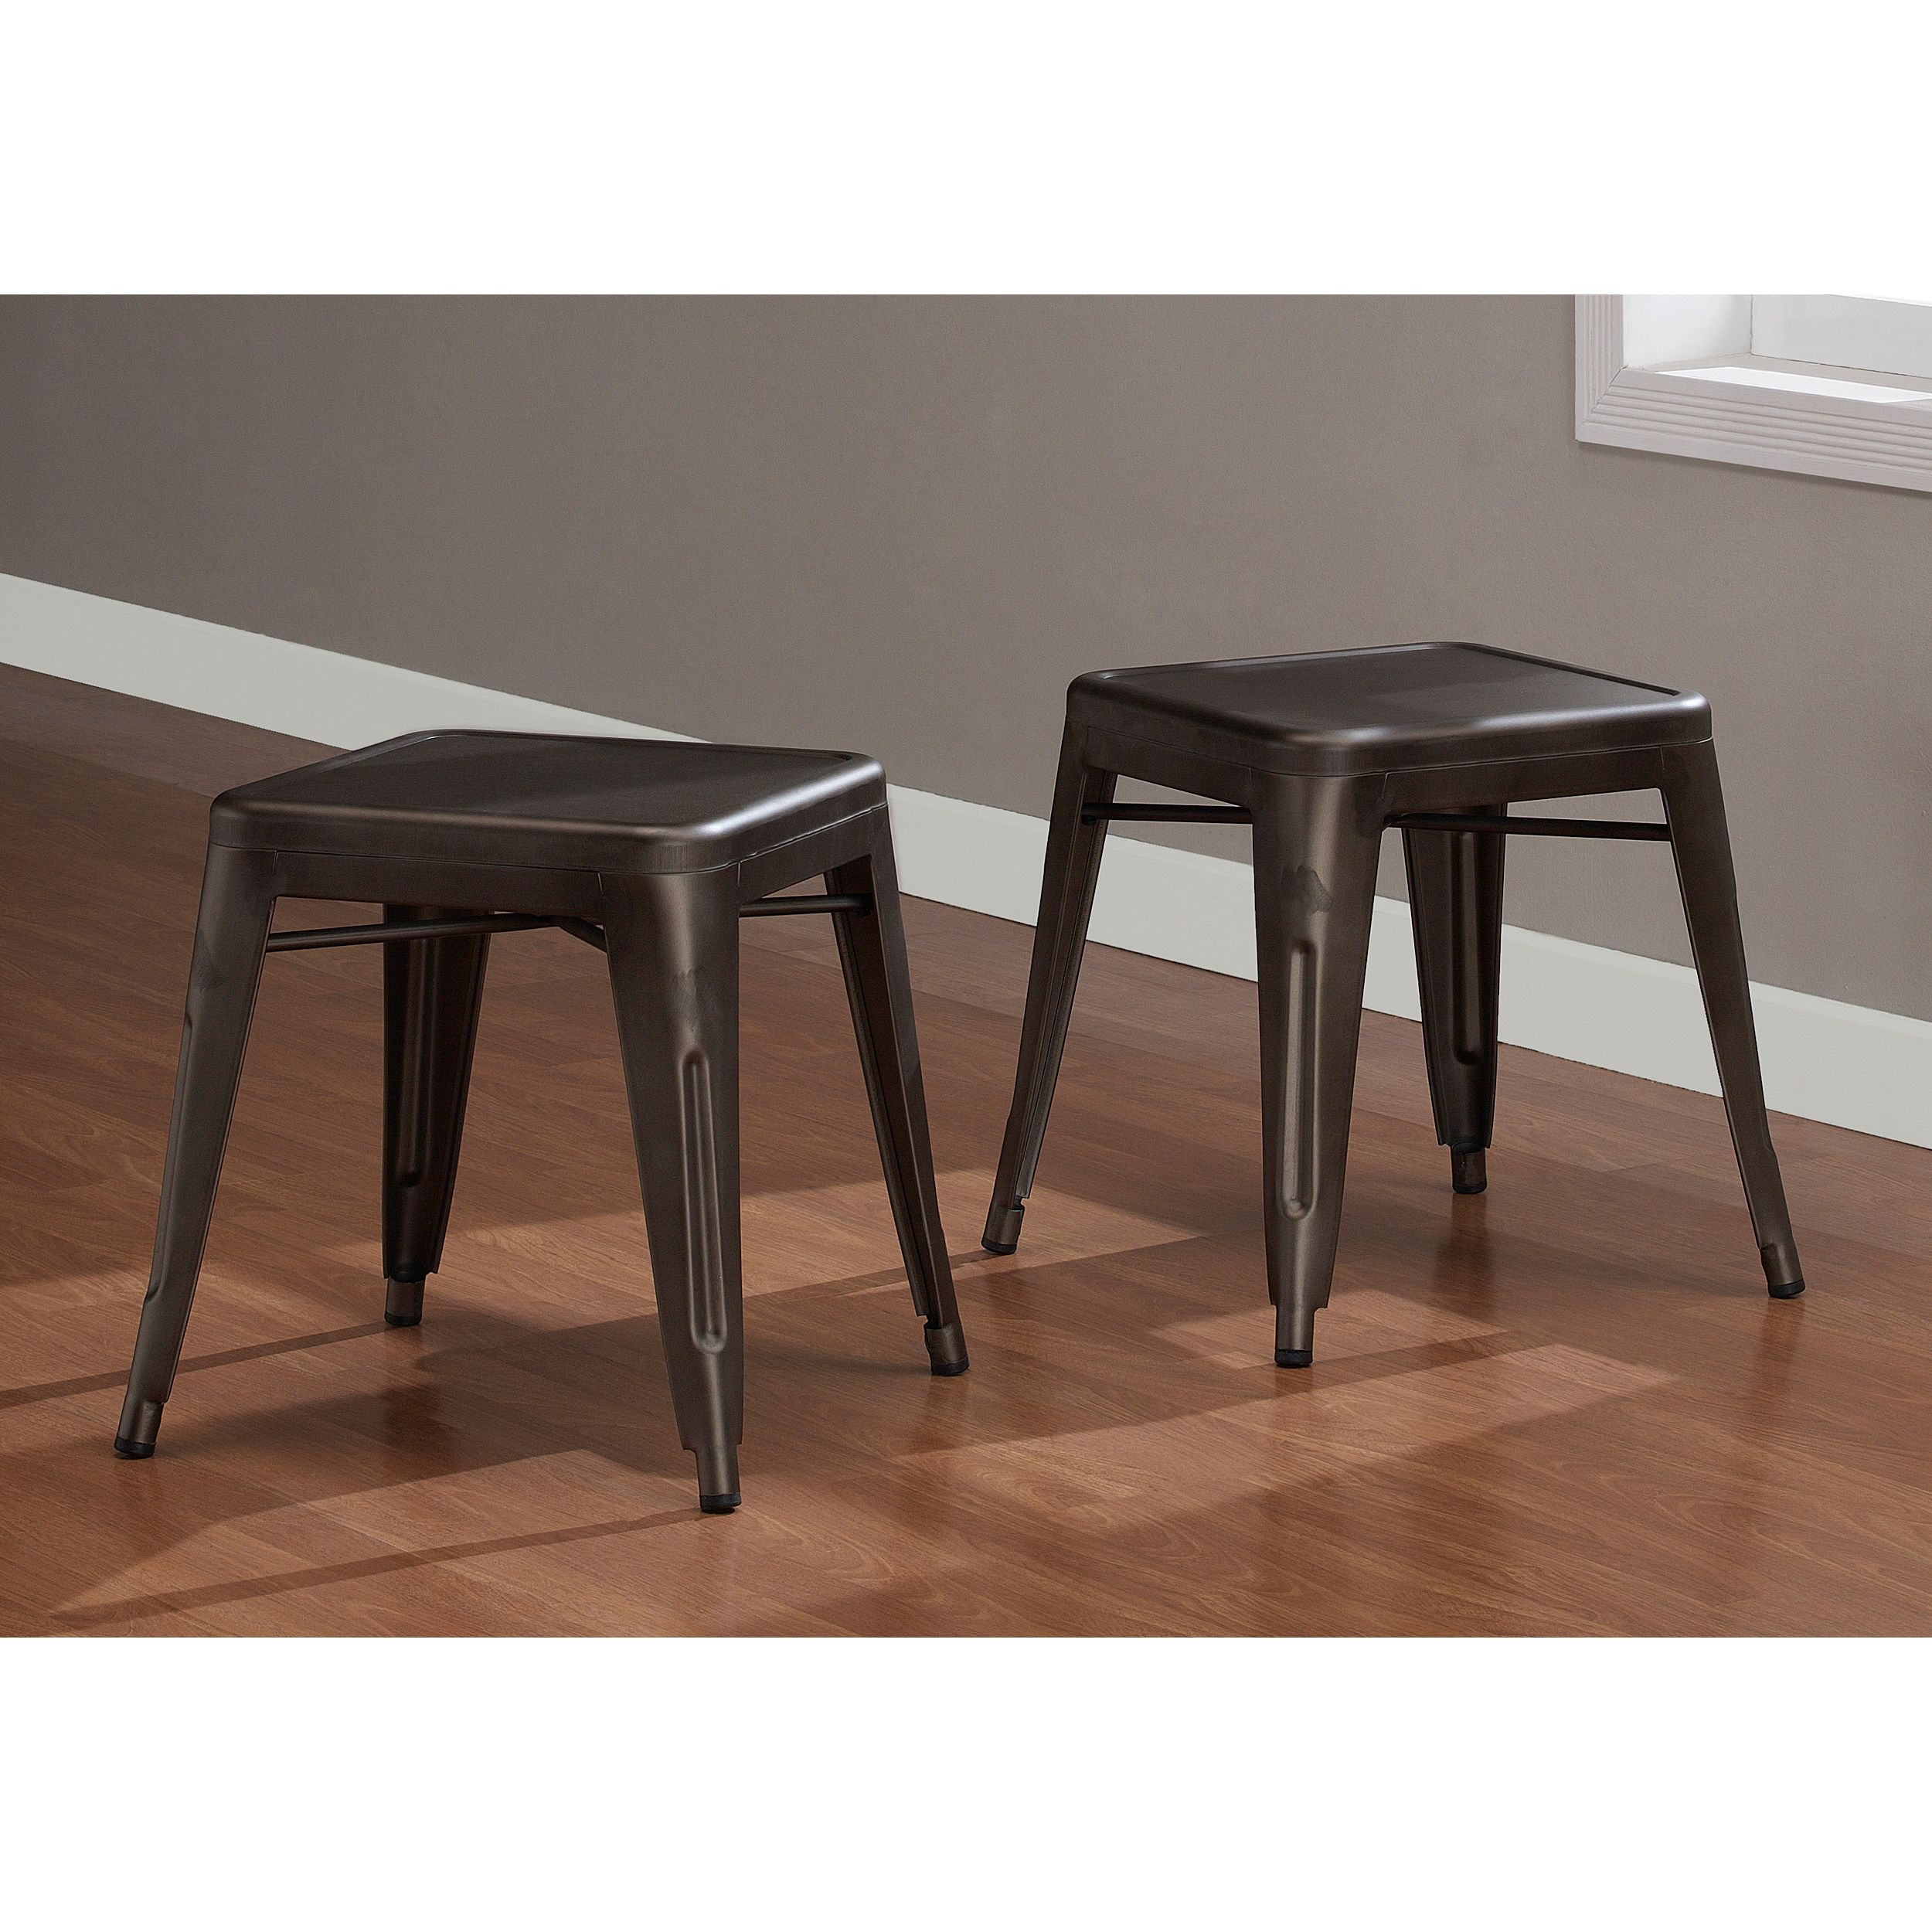 The Gray Vintage Tables Are Mar And Scratch Resistant So They Can Handle Typical Wear Tear When You Dont Need